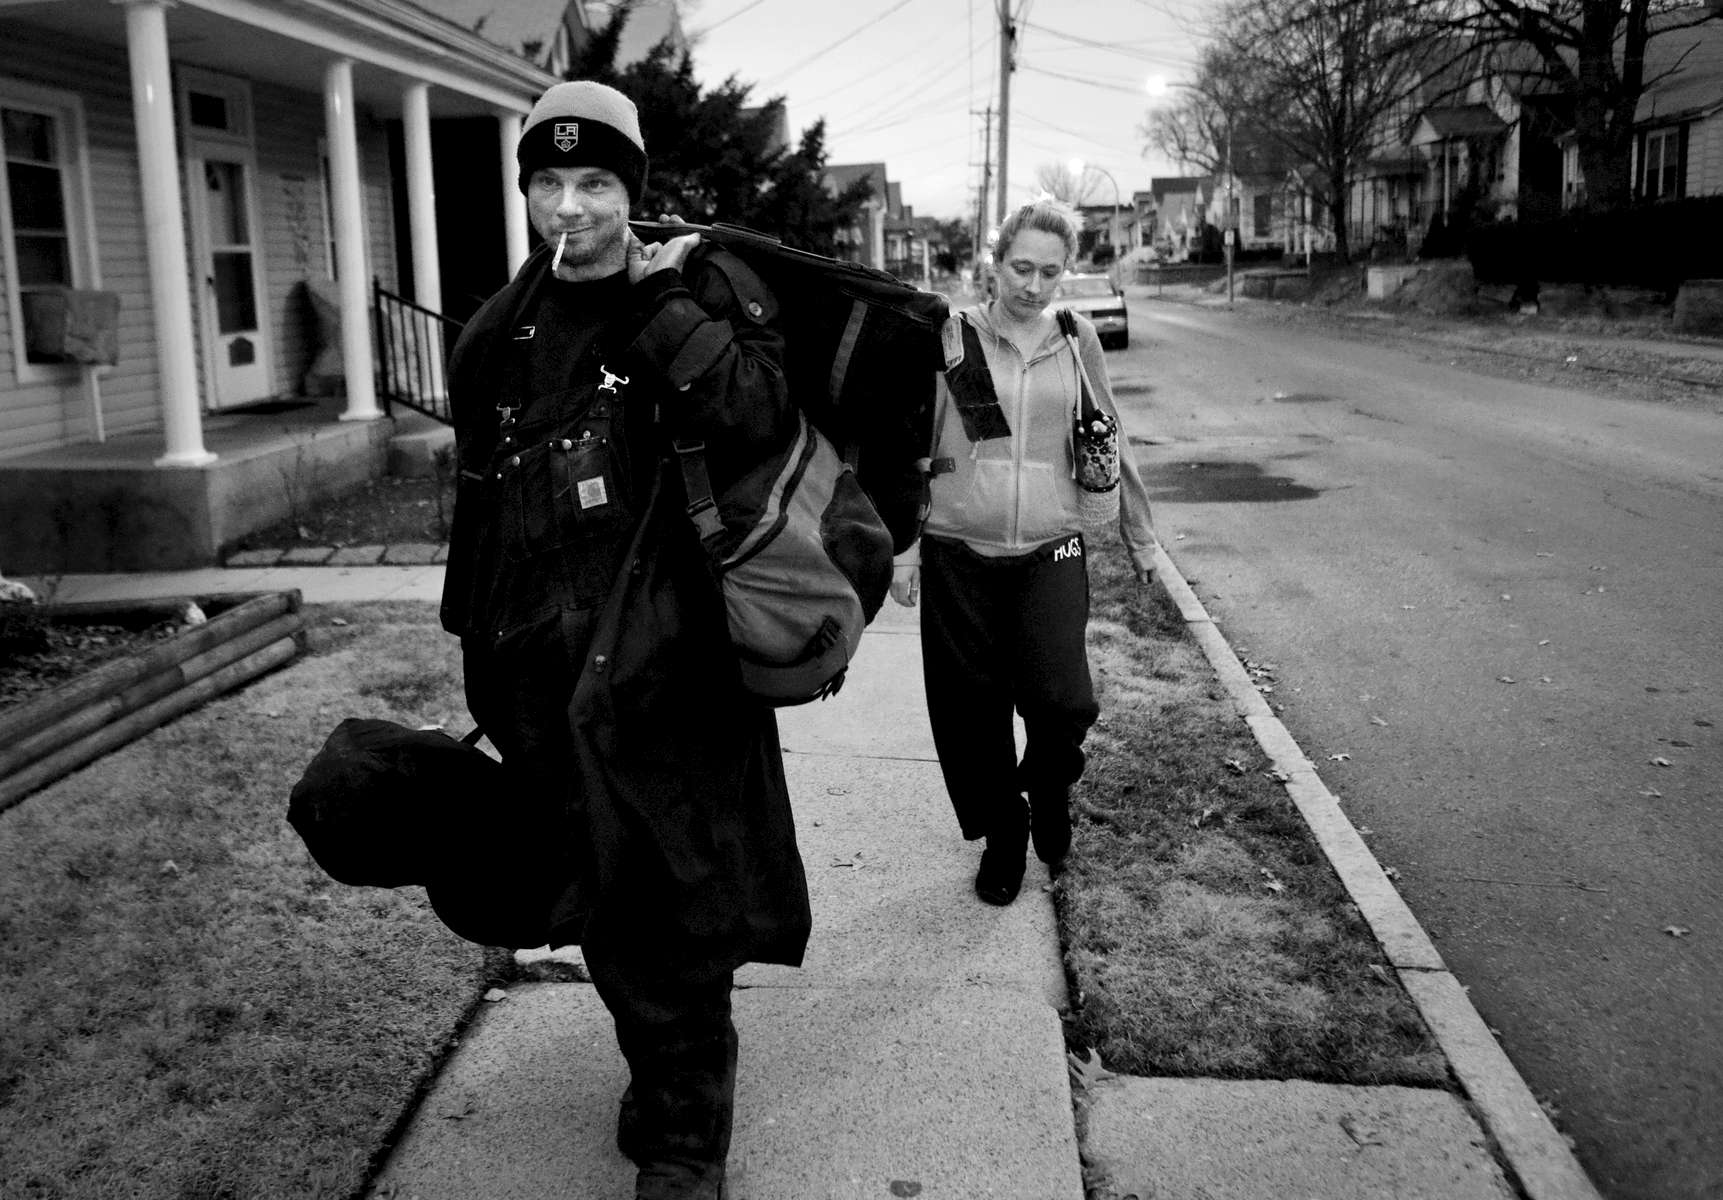 Richard Skinner and Ashley Johnston walk to Johnston's home to wash his clothes and shoot heroin in St. Louis on Monday, Feb. 6, 2017. Johnston and Skinner have a 12-year-old child together that is cared for by Johnston's mother. The two are still attracted to each other but Johnston is currently six months pregnant with another man's child.